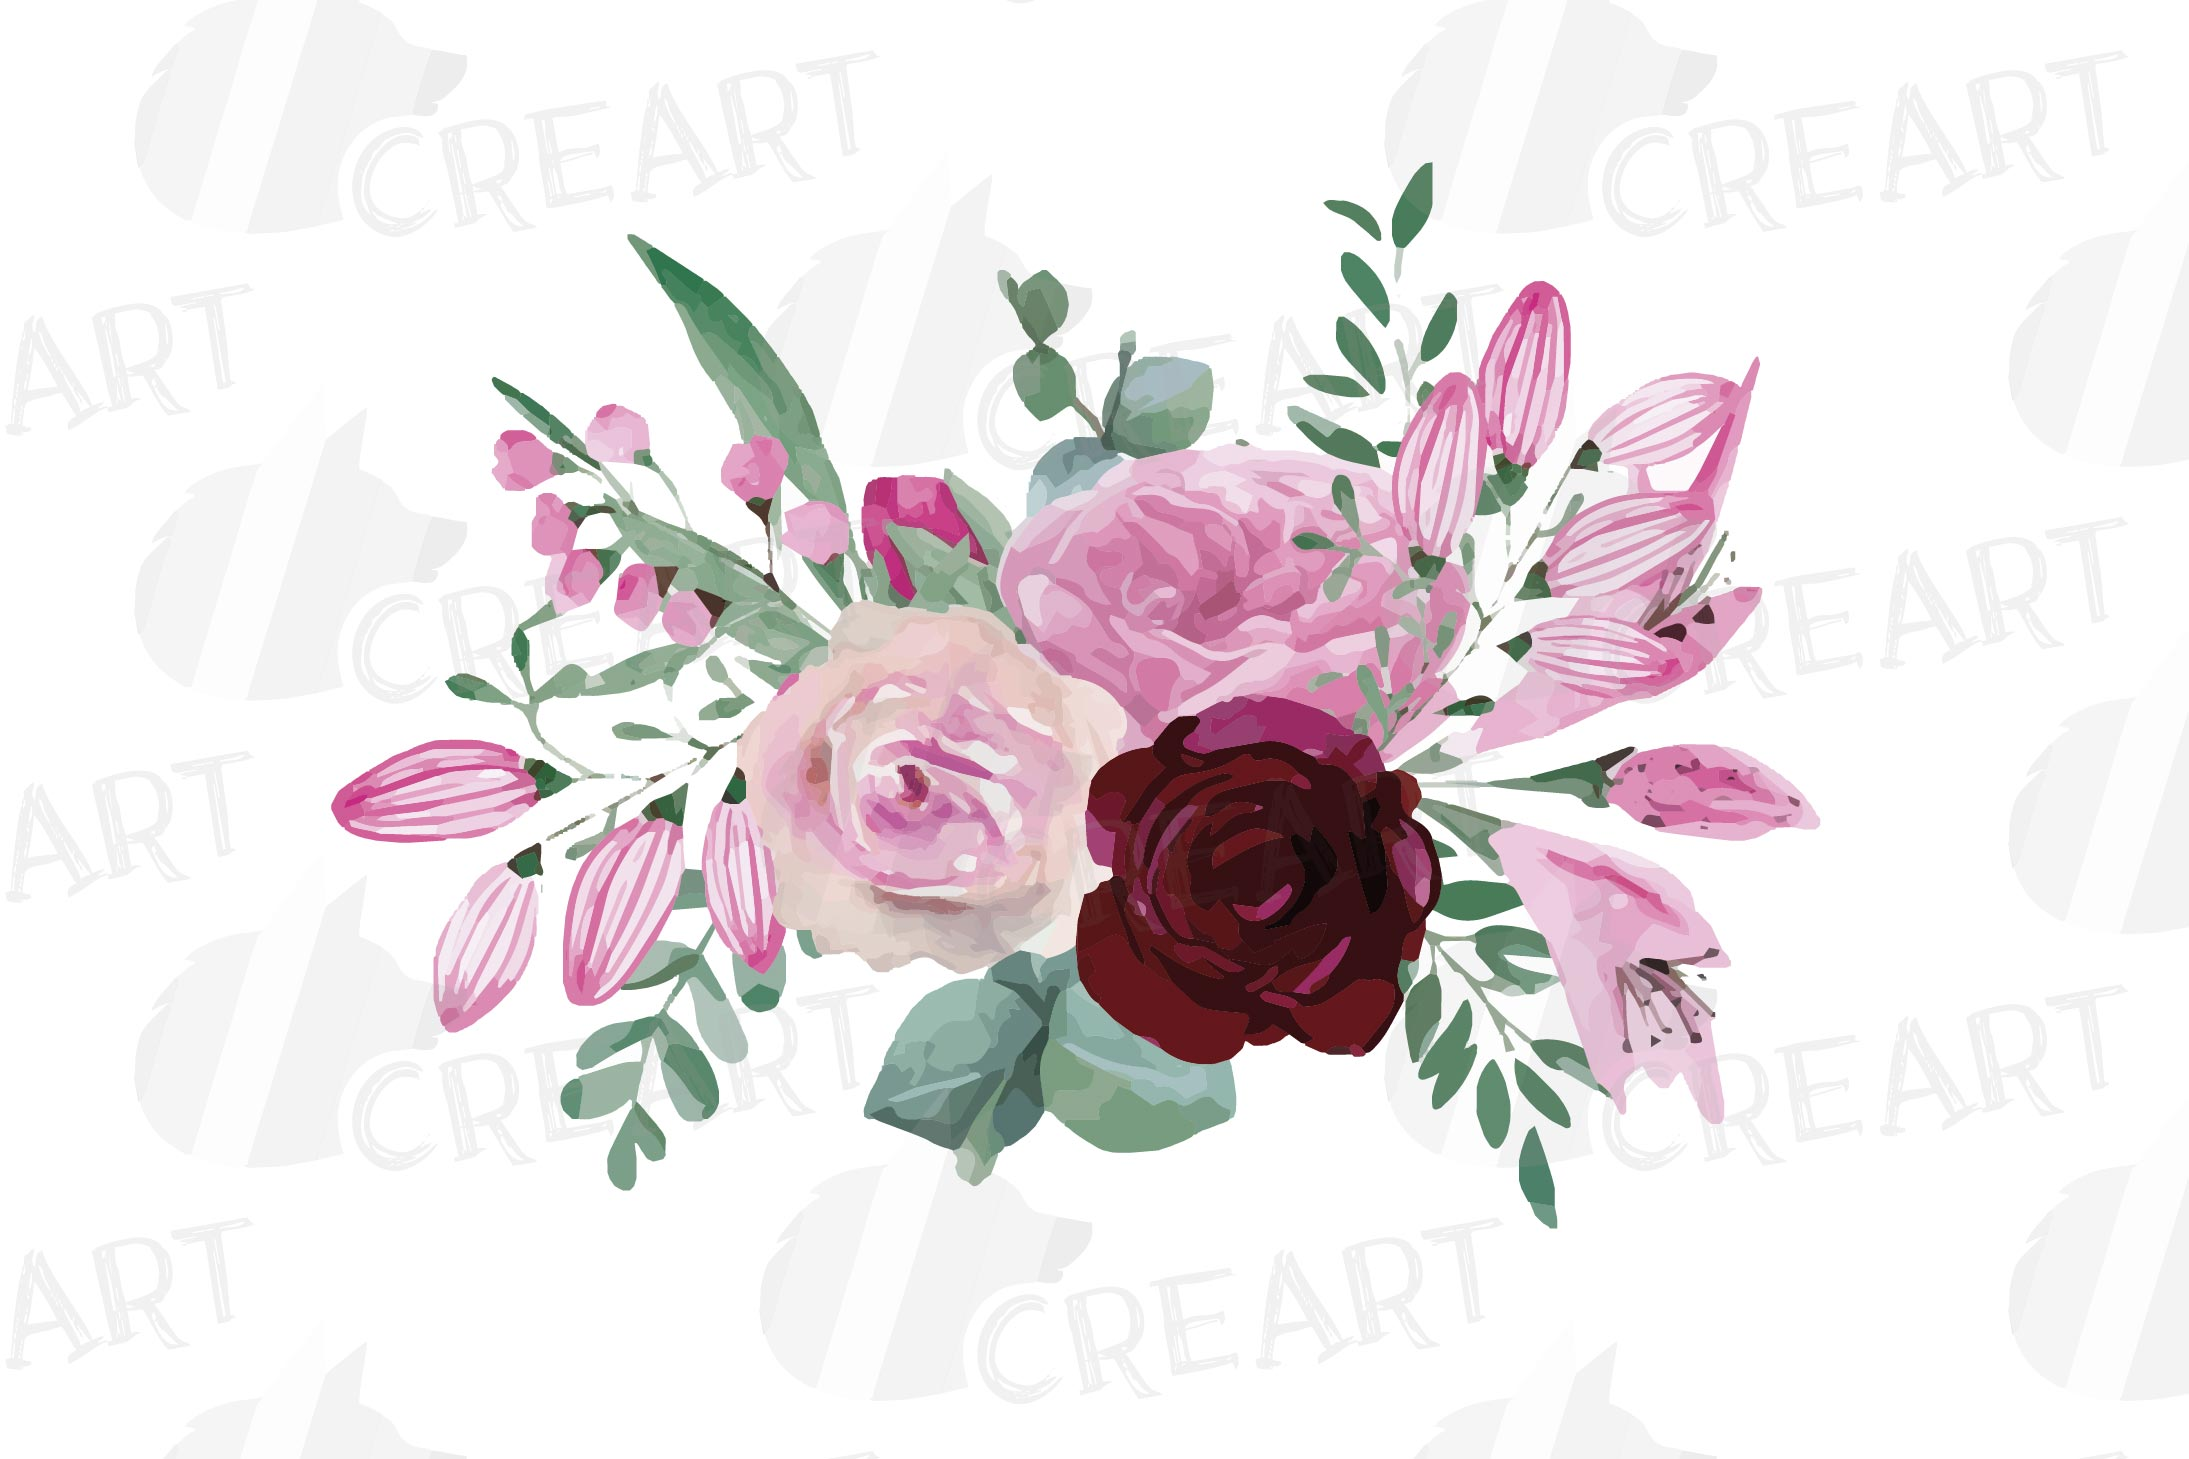 Watercolor elegant floral bouquets 2, rose, anemone decor example image 7